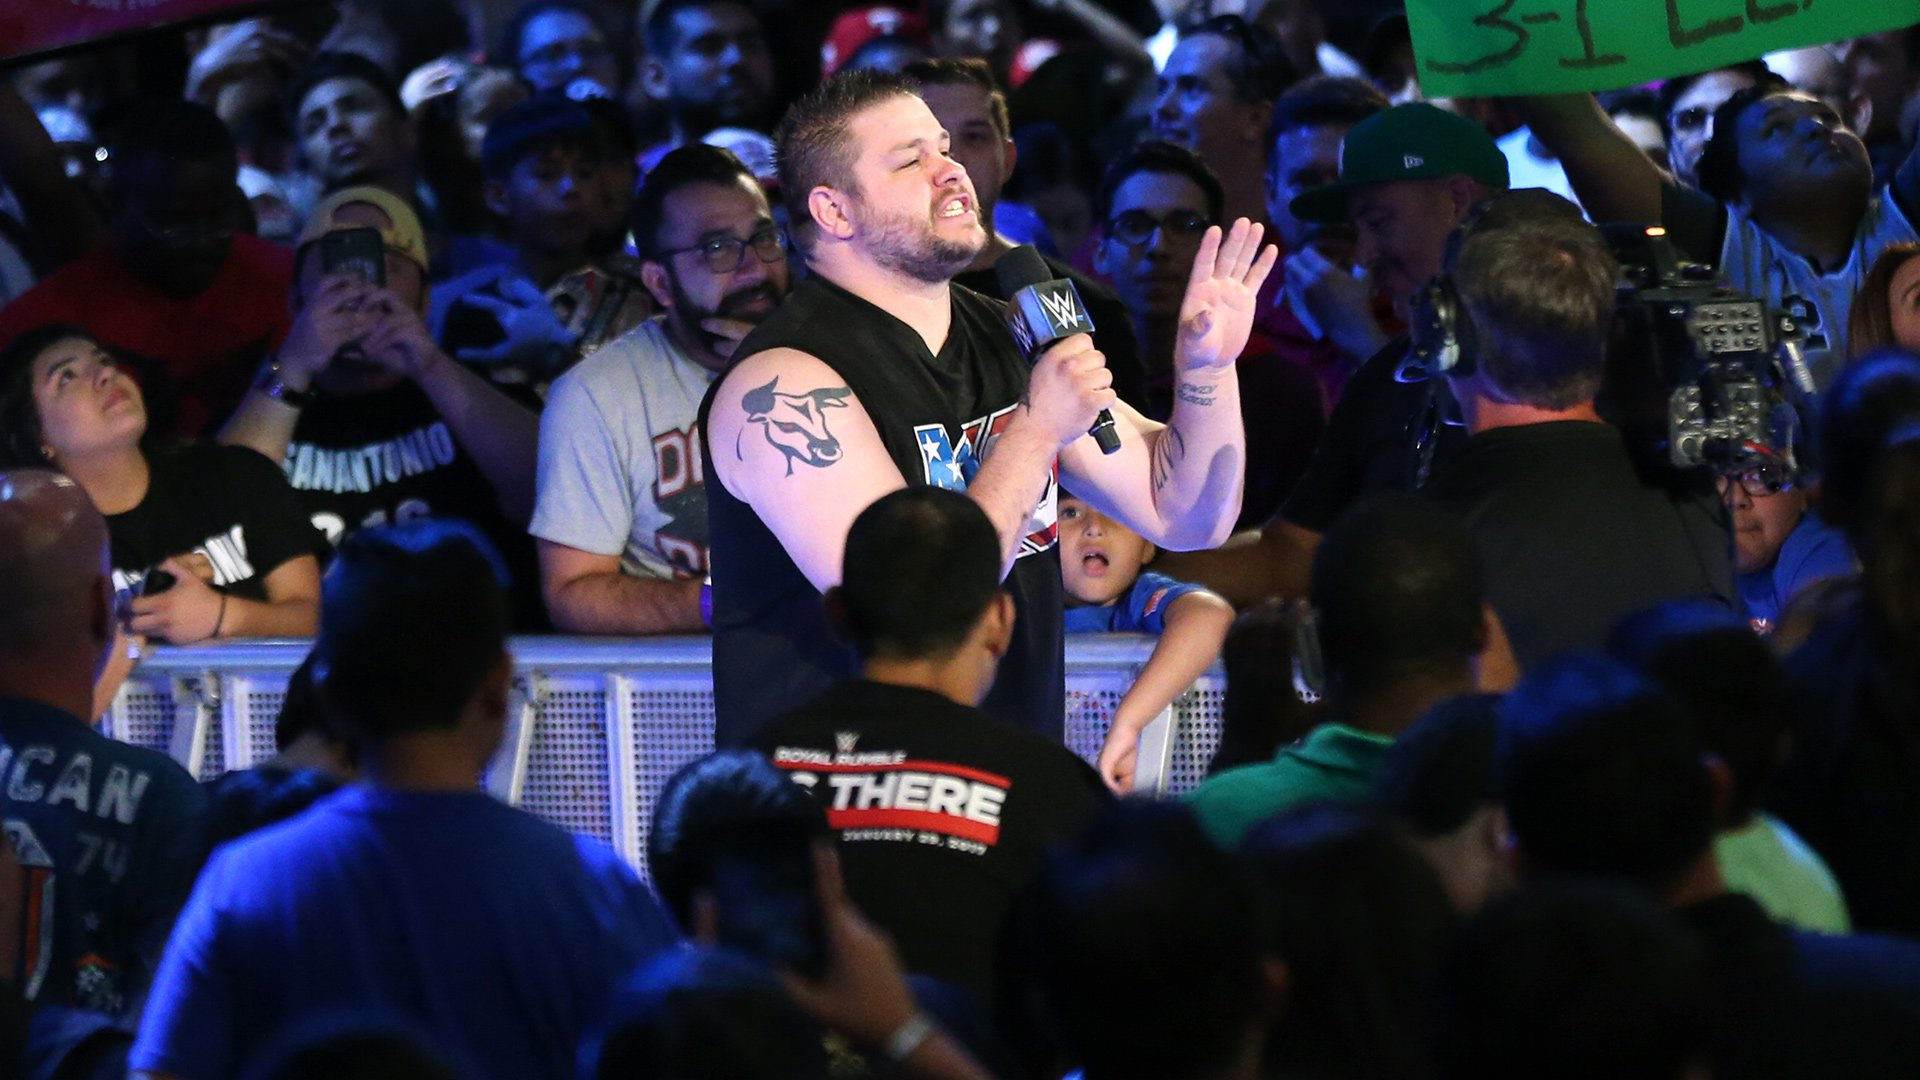 Kevin Owens interrupts and says that no one wants to see Cena vs. Styles again...